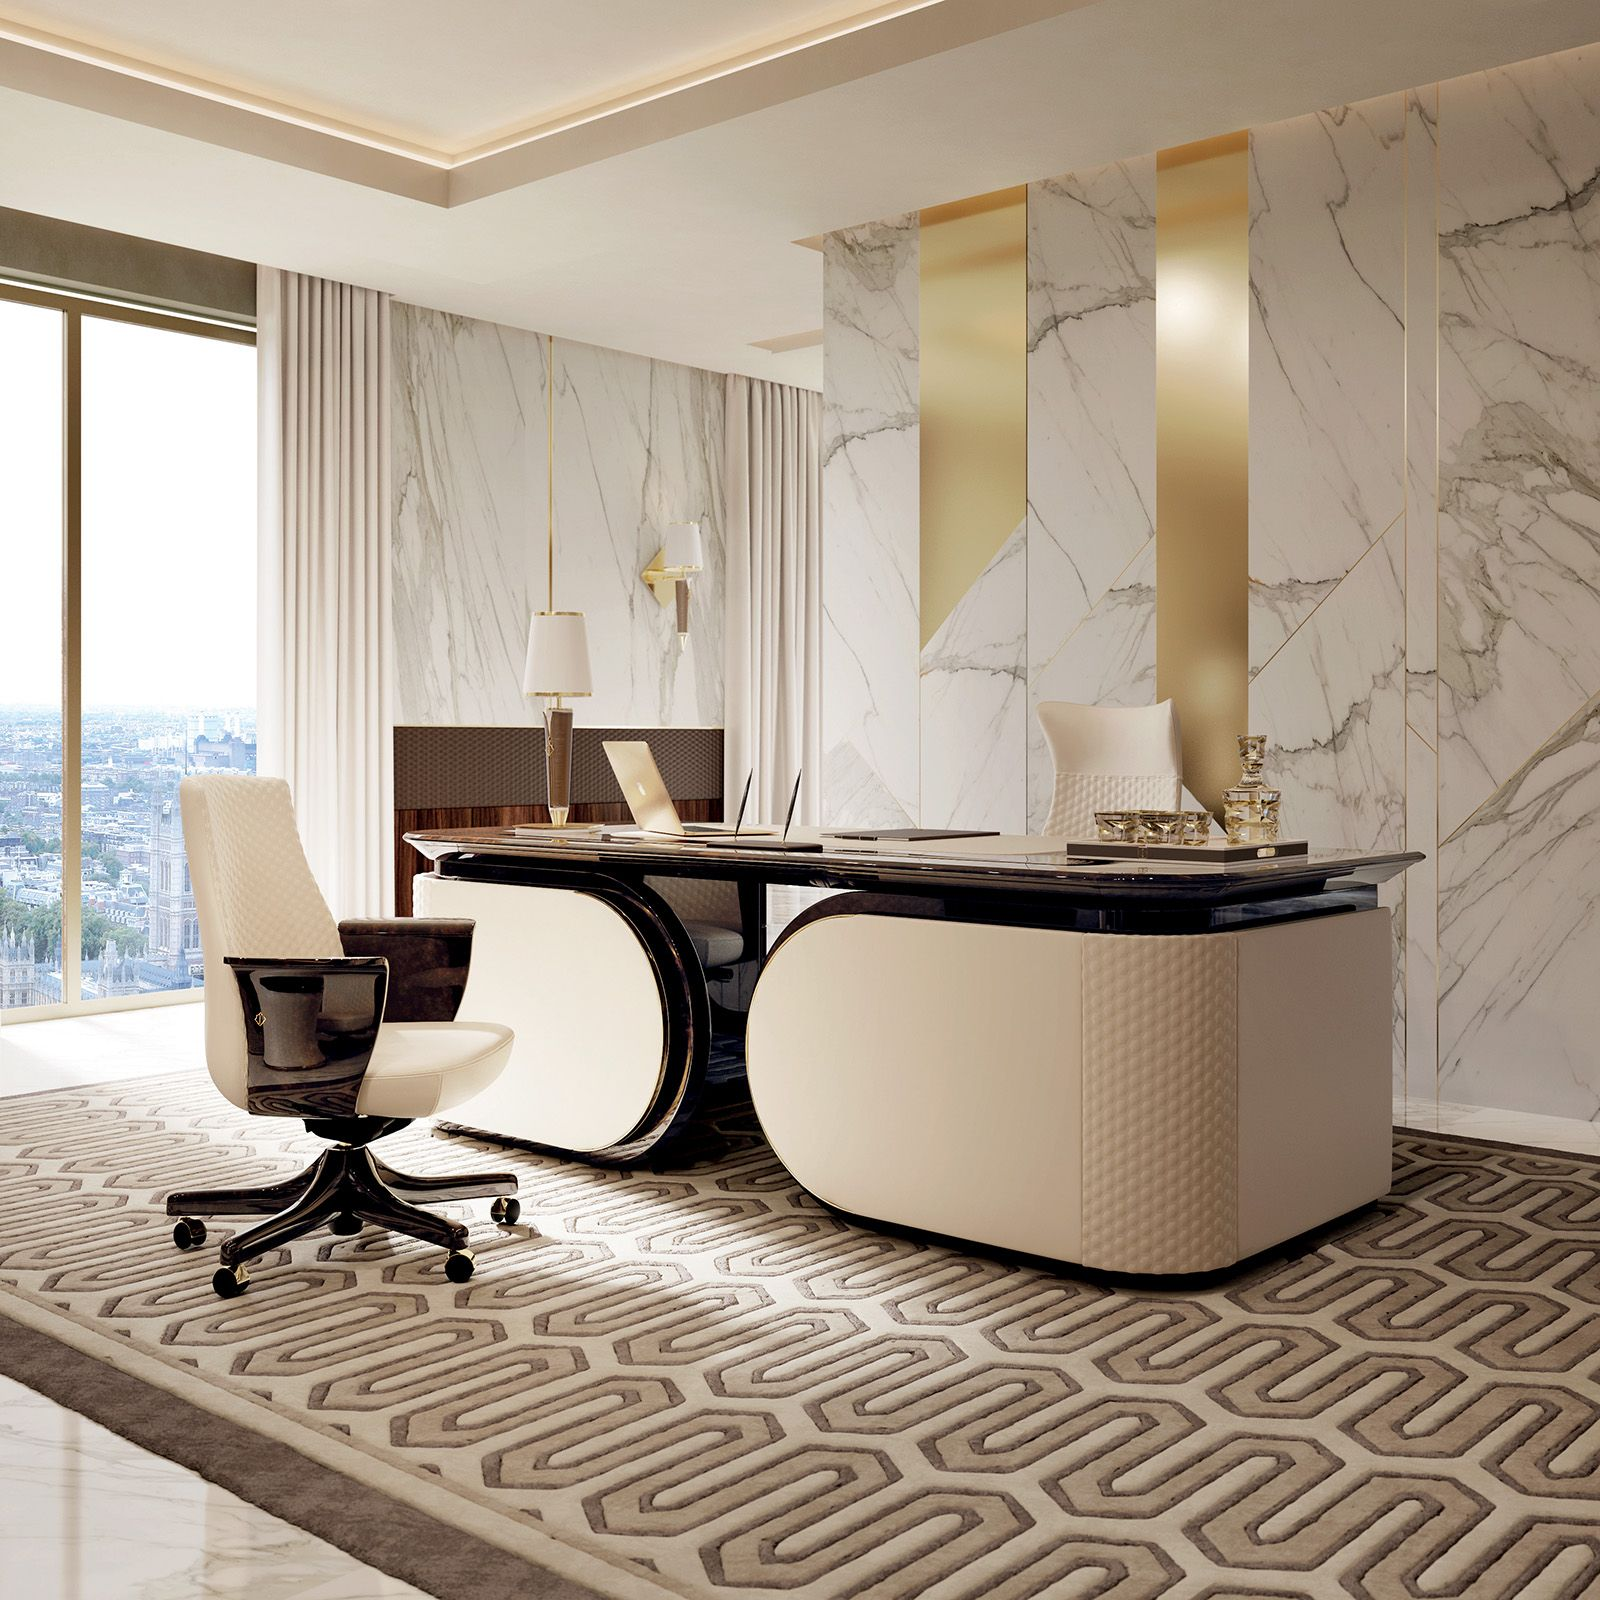 office furniture design images. Vogue Collection Www.turri.it Italian Luxury Office Desk Furniture Design Images